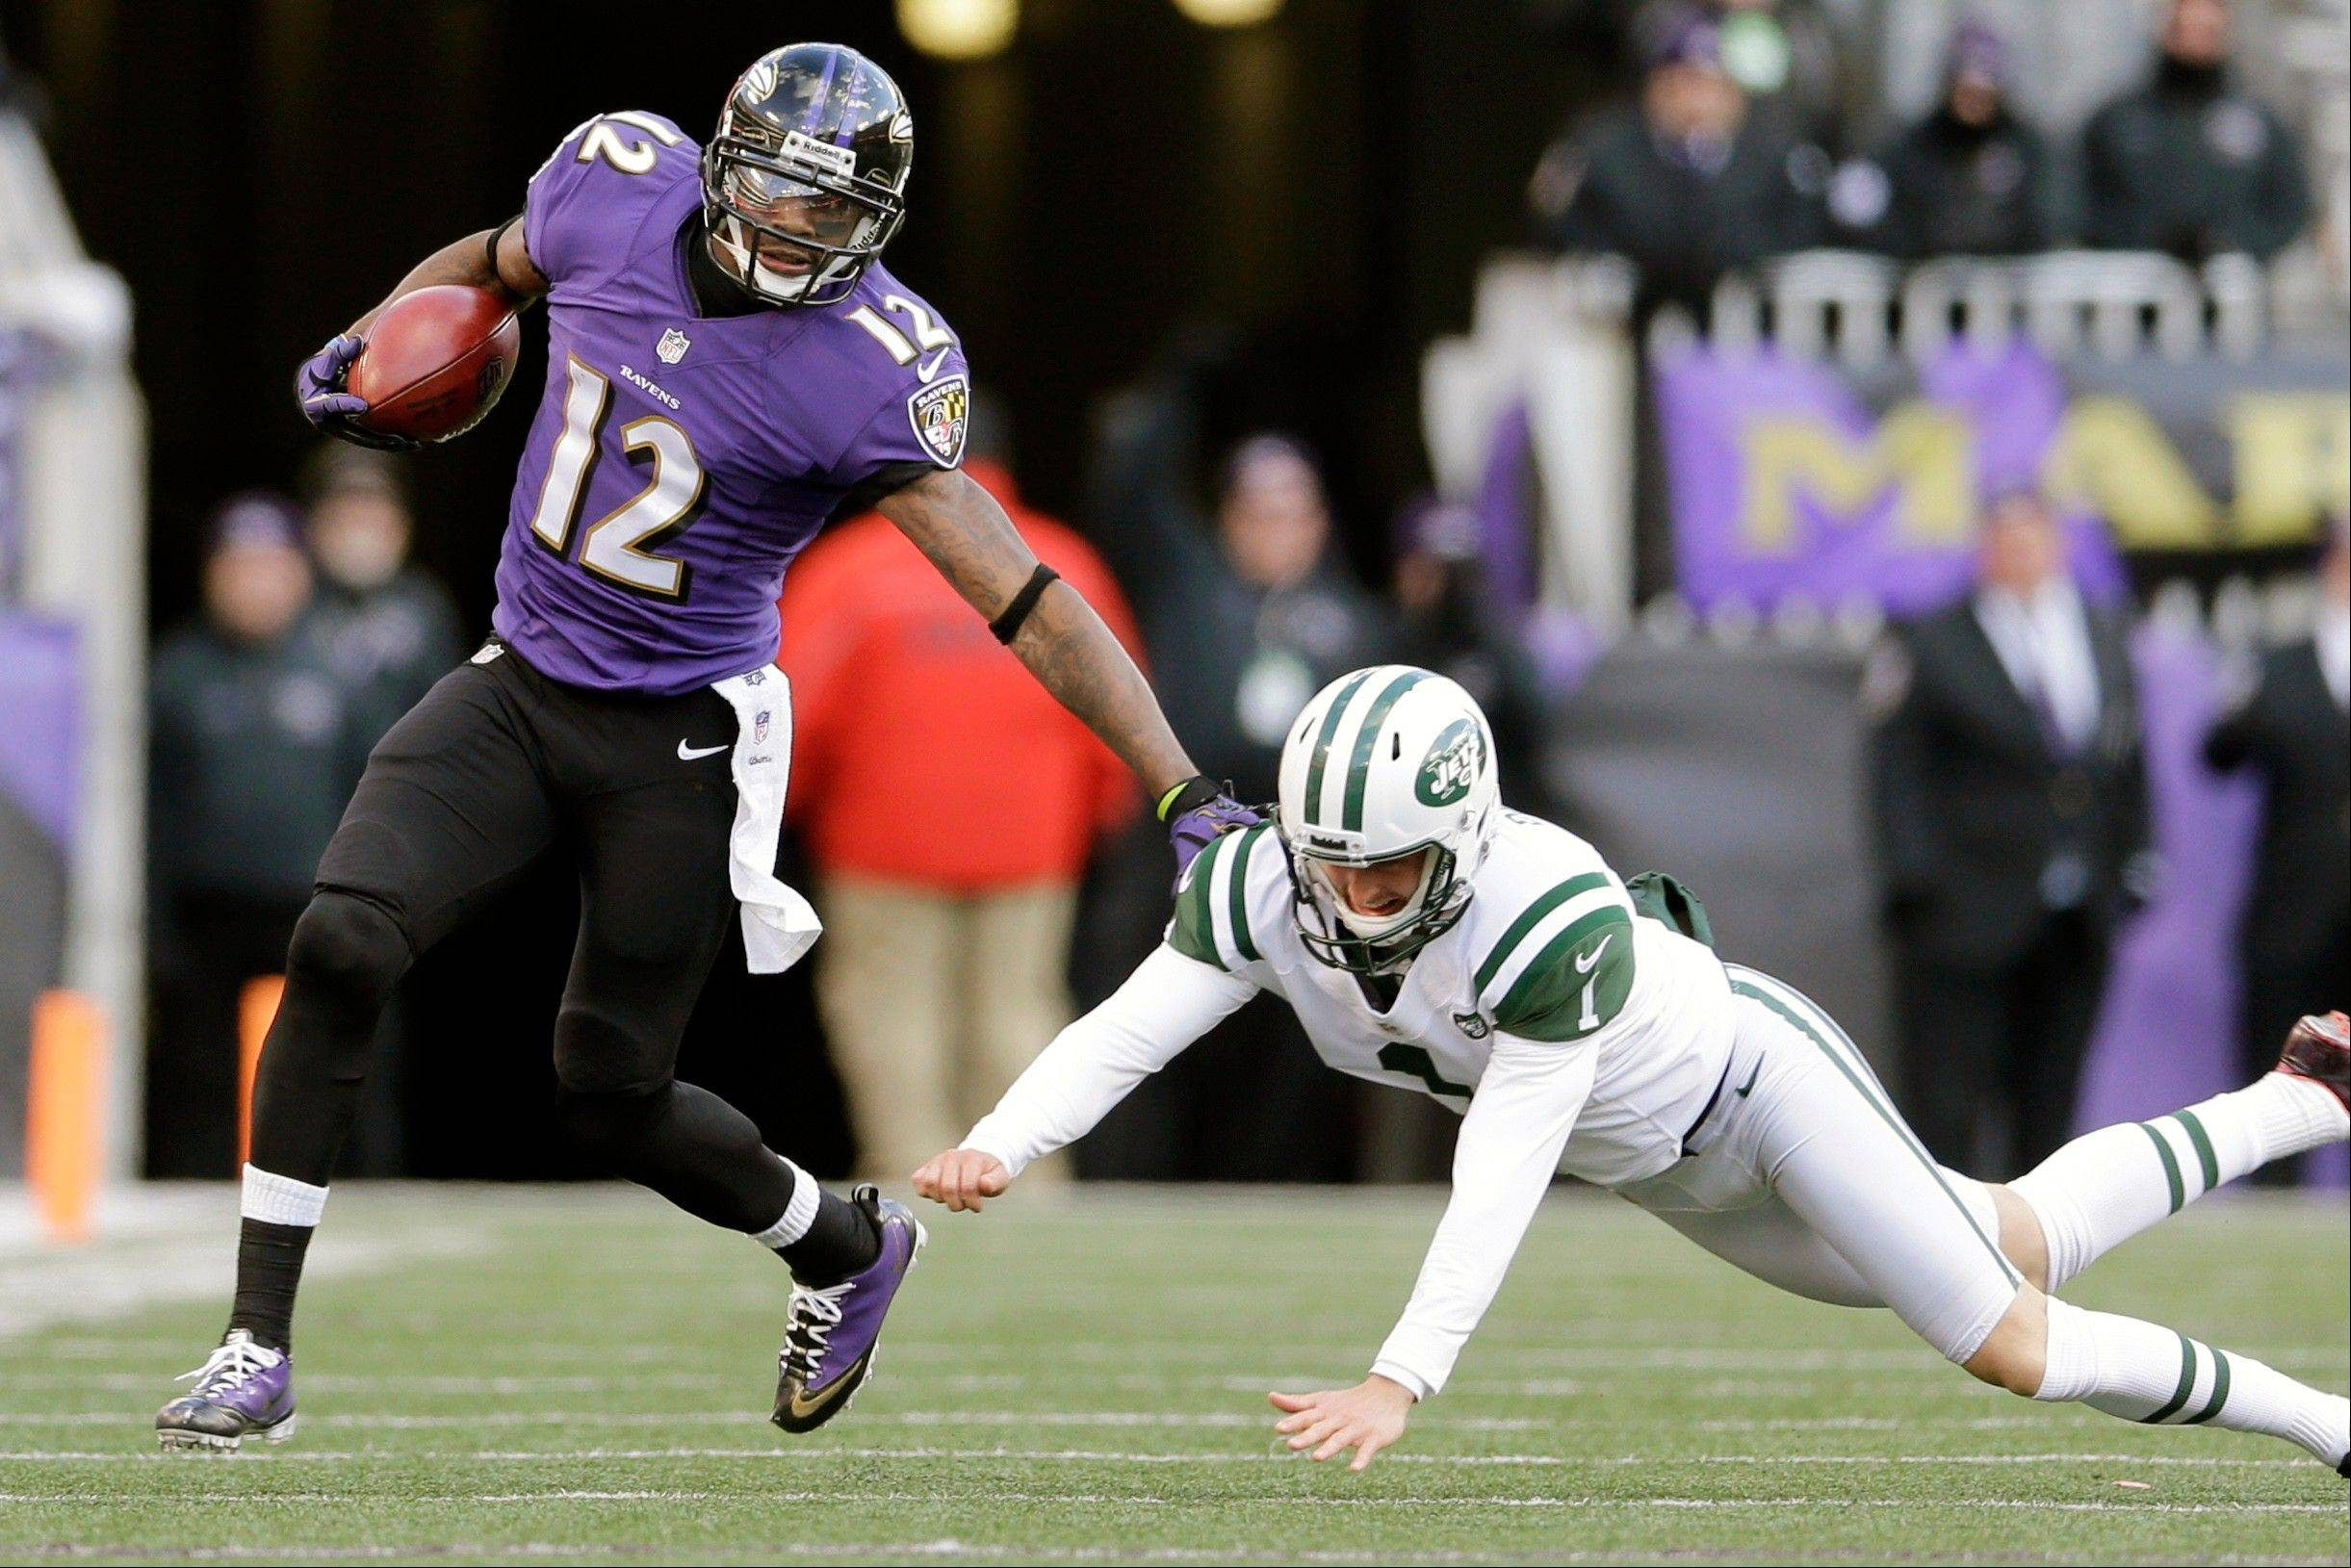 Baltimore Ravens wide receiver Jacoby Jones, left, out runs New York Jets punter Ryan Quigley on a punt return during the second half of an NFL football game in Baltimore, Sunday, Nov. 24, 2013.